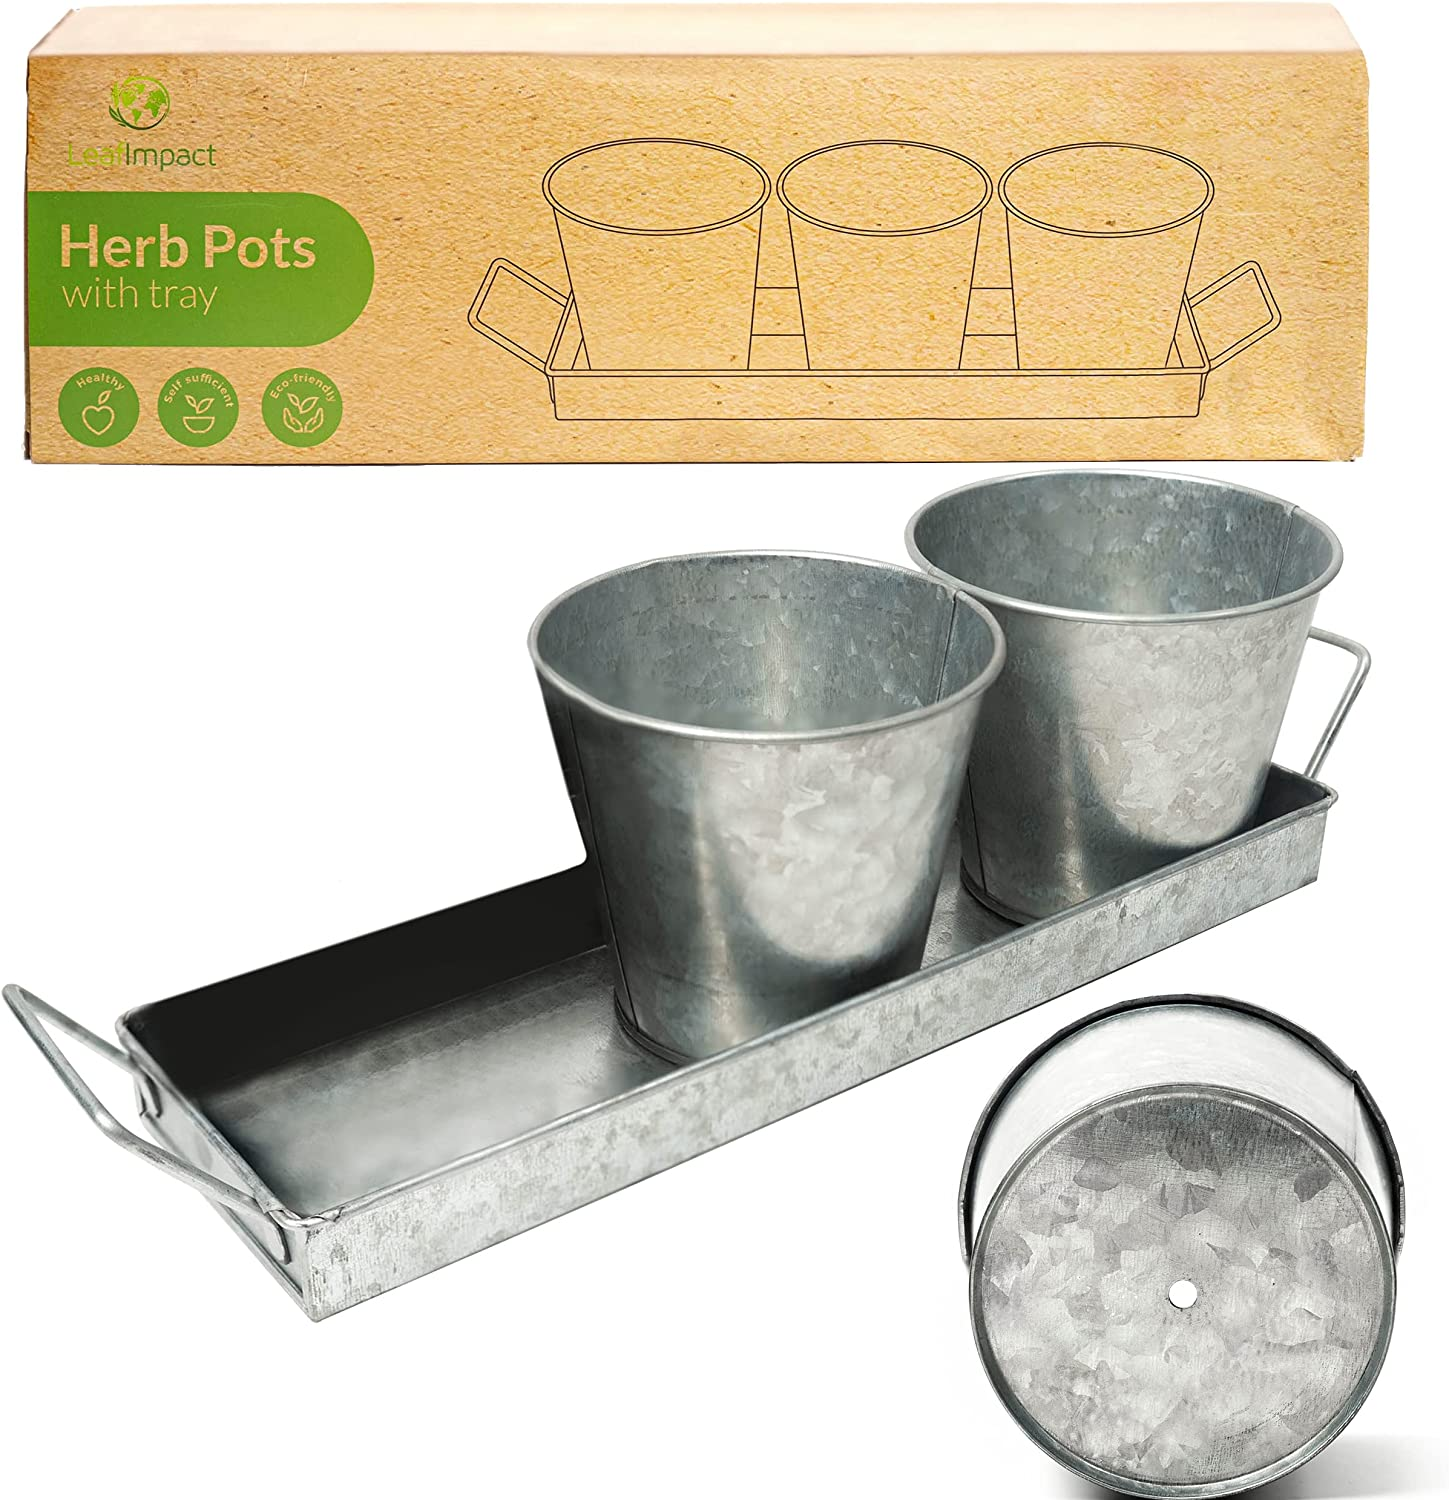 Herb Pots for Indoor Plants with Tray | Grow Fresh Herbs at Home | Galvanized Window Sill Planters Indoor | Indoor Herb Planter | Windowsill Plant Tray for Growing Basil, Mint, Parsley and More